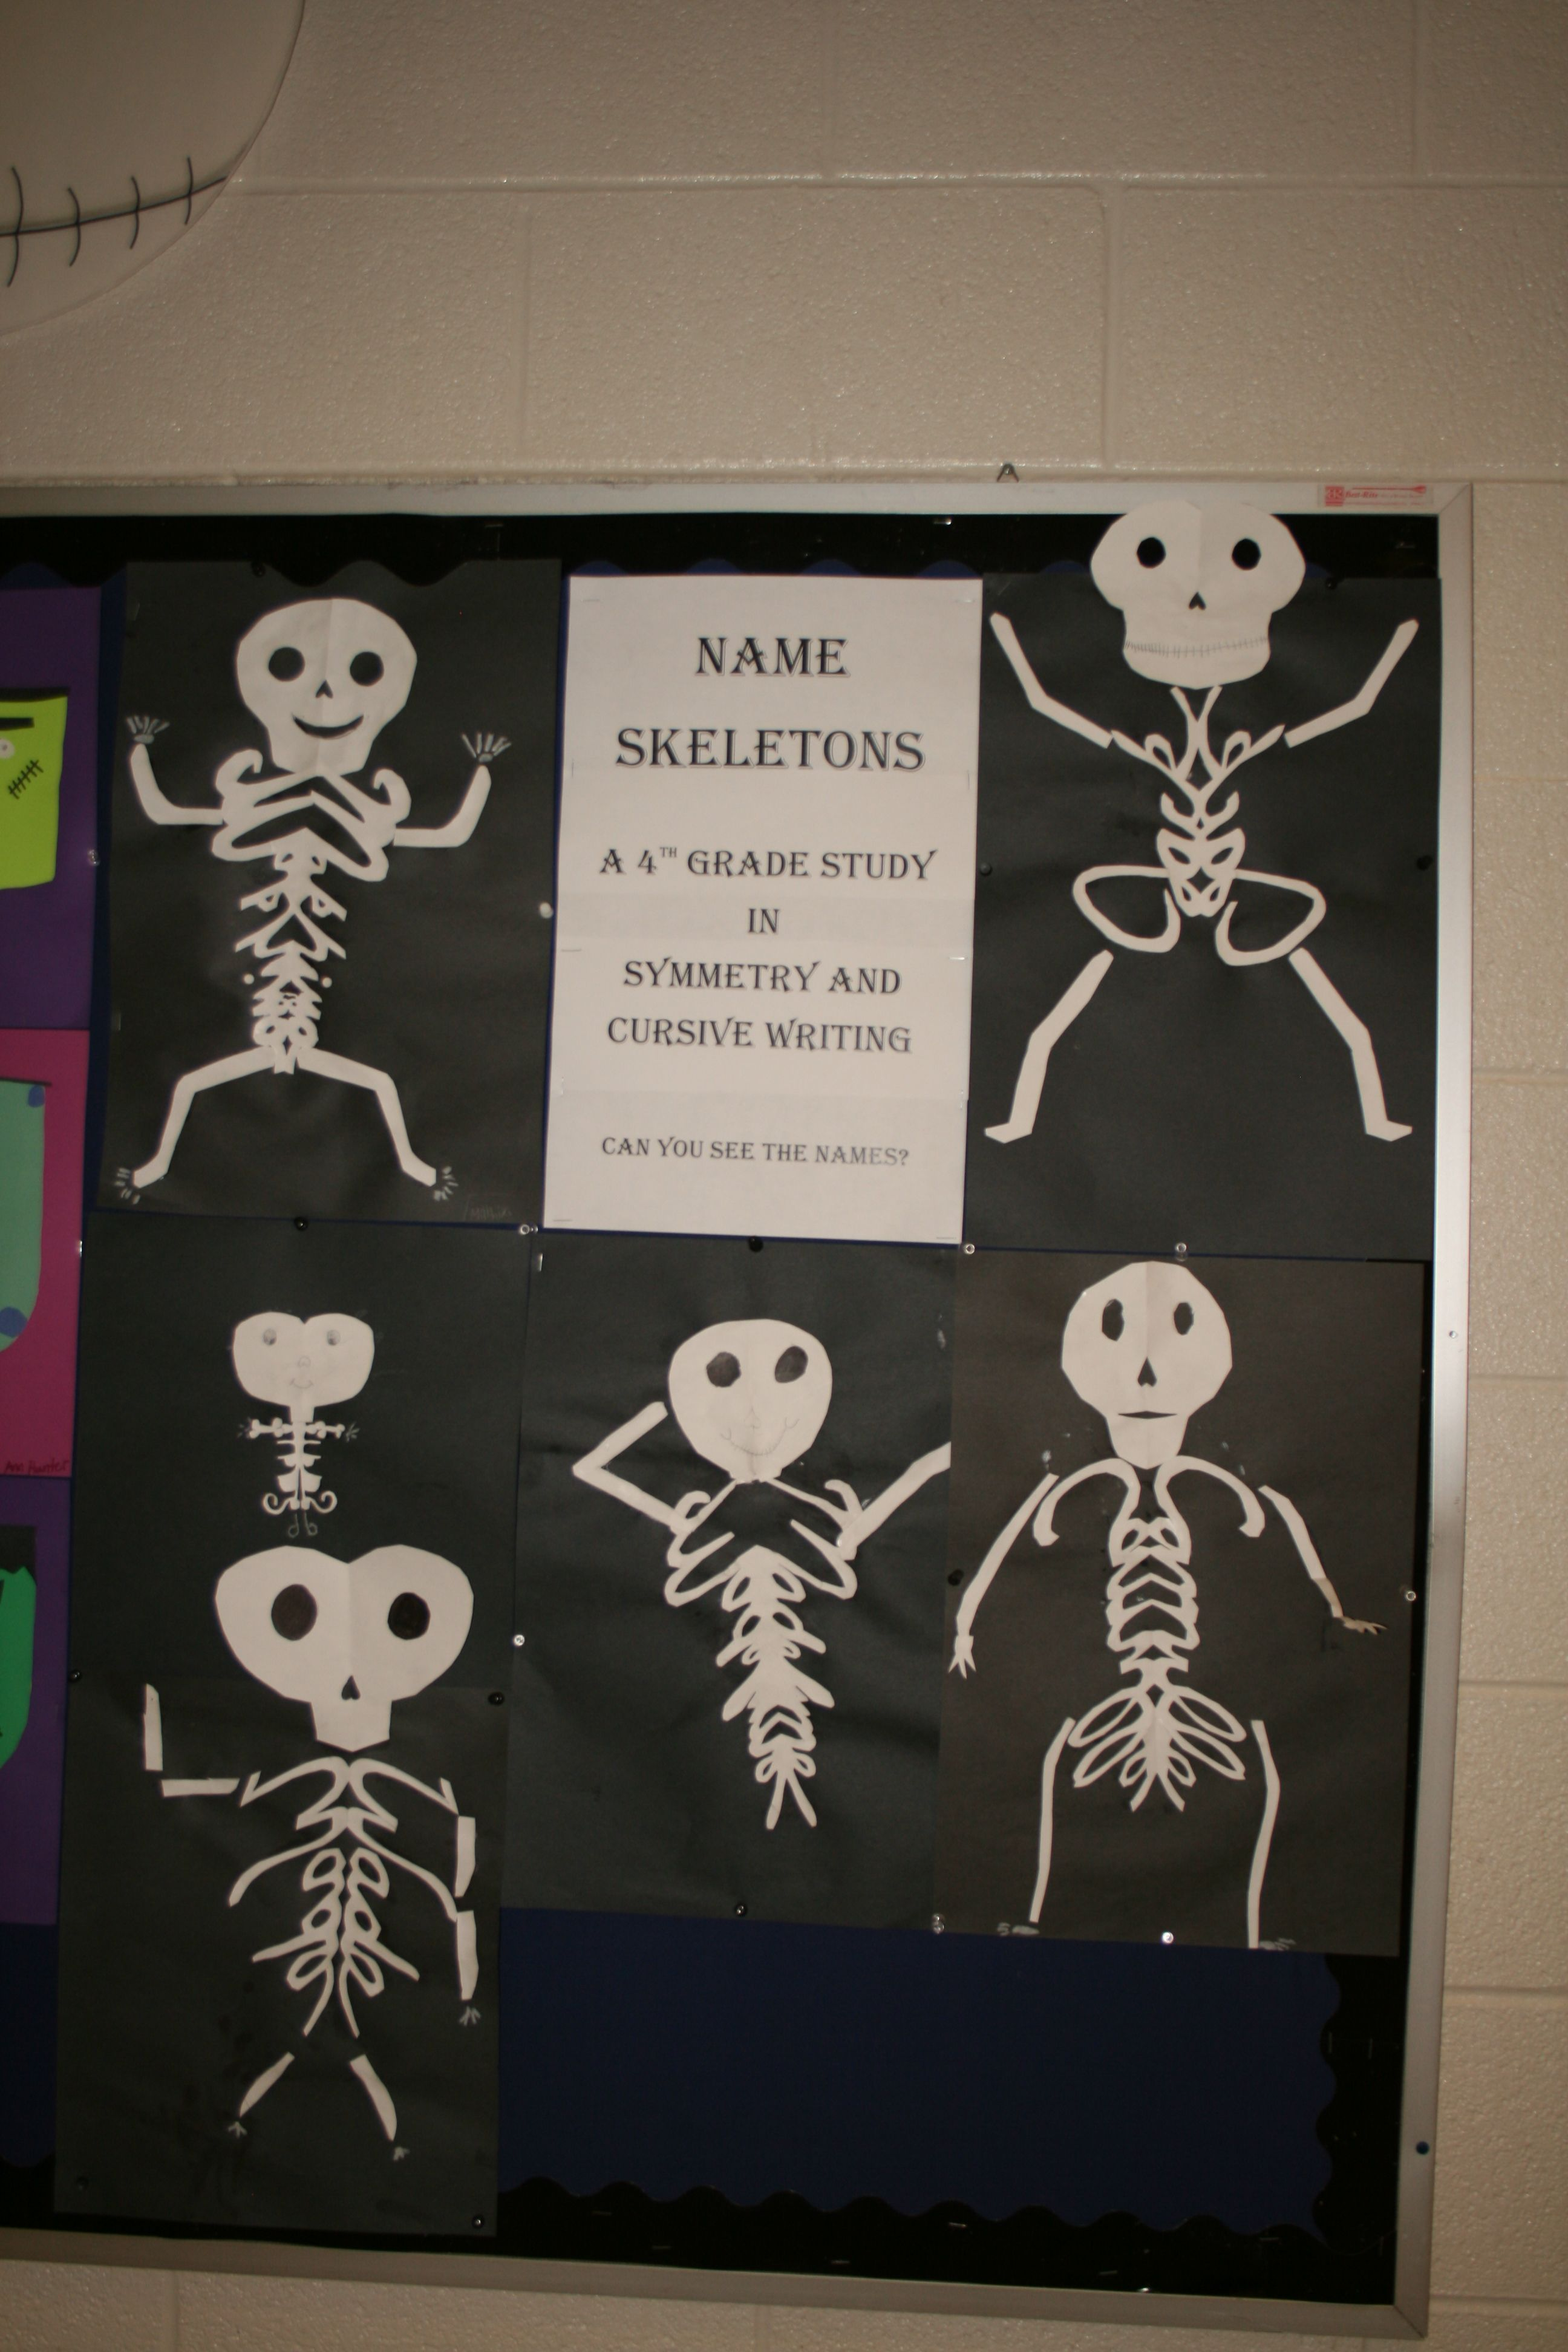 Our 4th Graders Made Name Skeletons Using Symmetry And